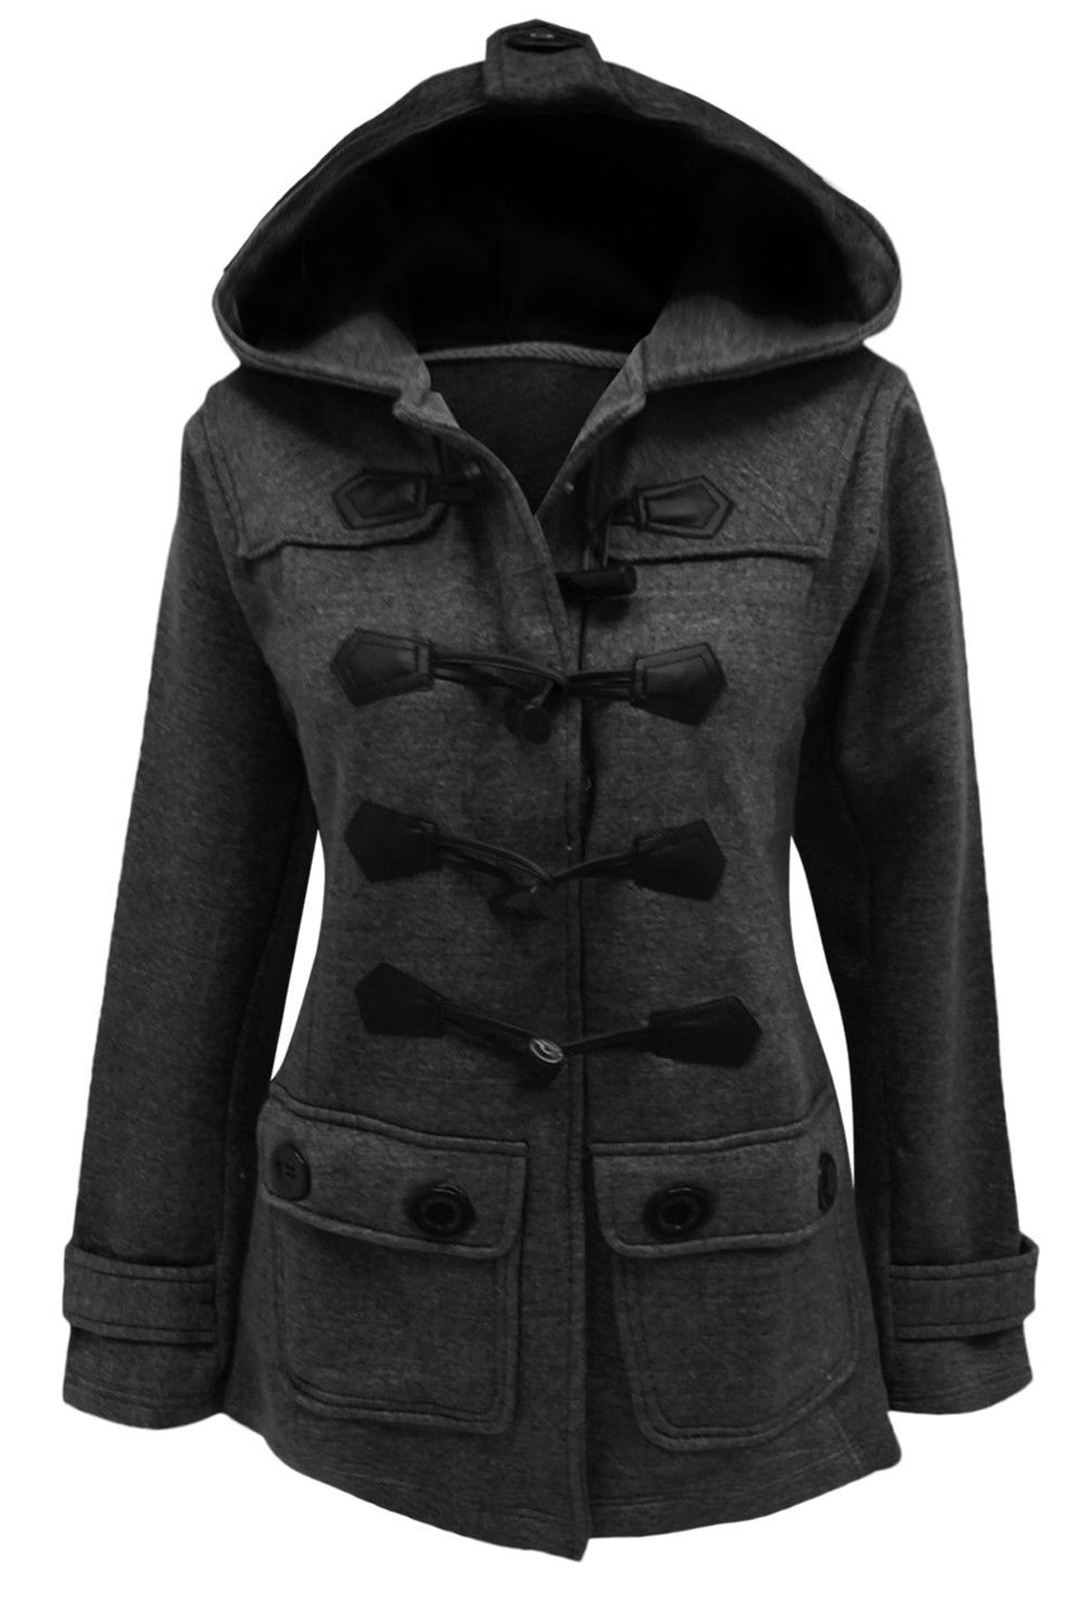 Catch One New Womens Fleece Toggle Duffle Coat Ladies Hooded Plus